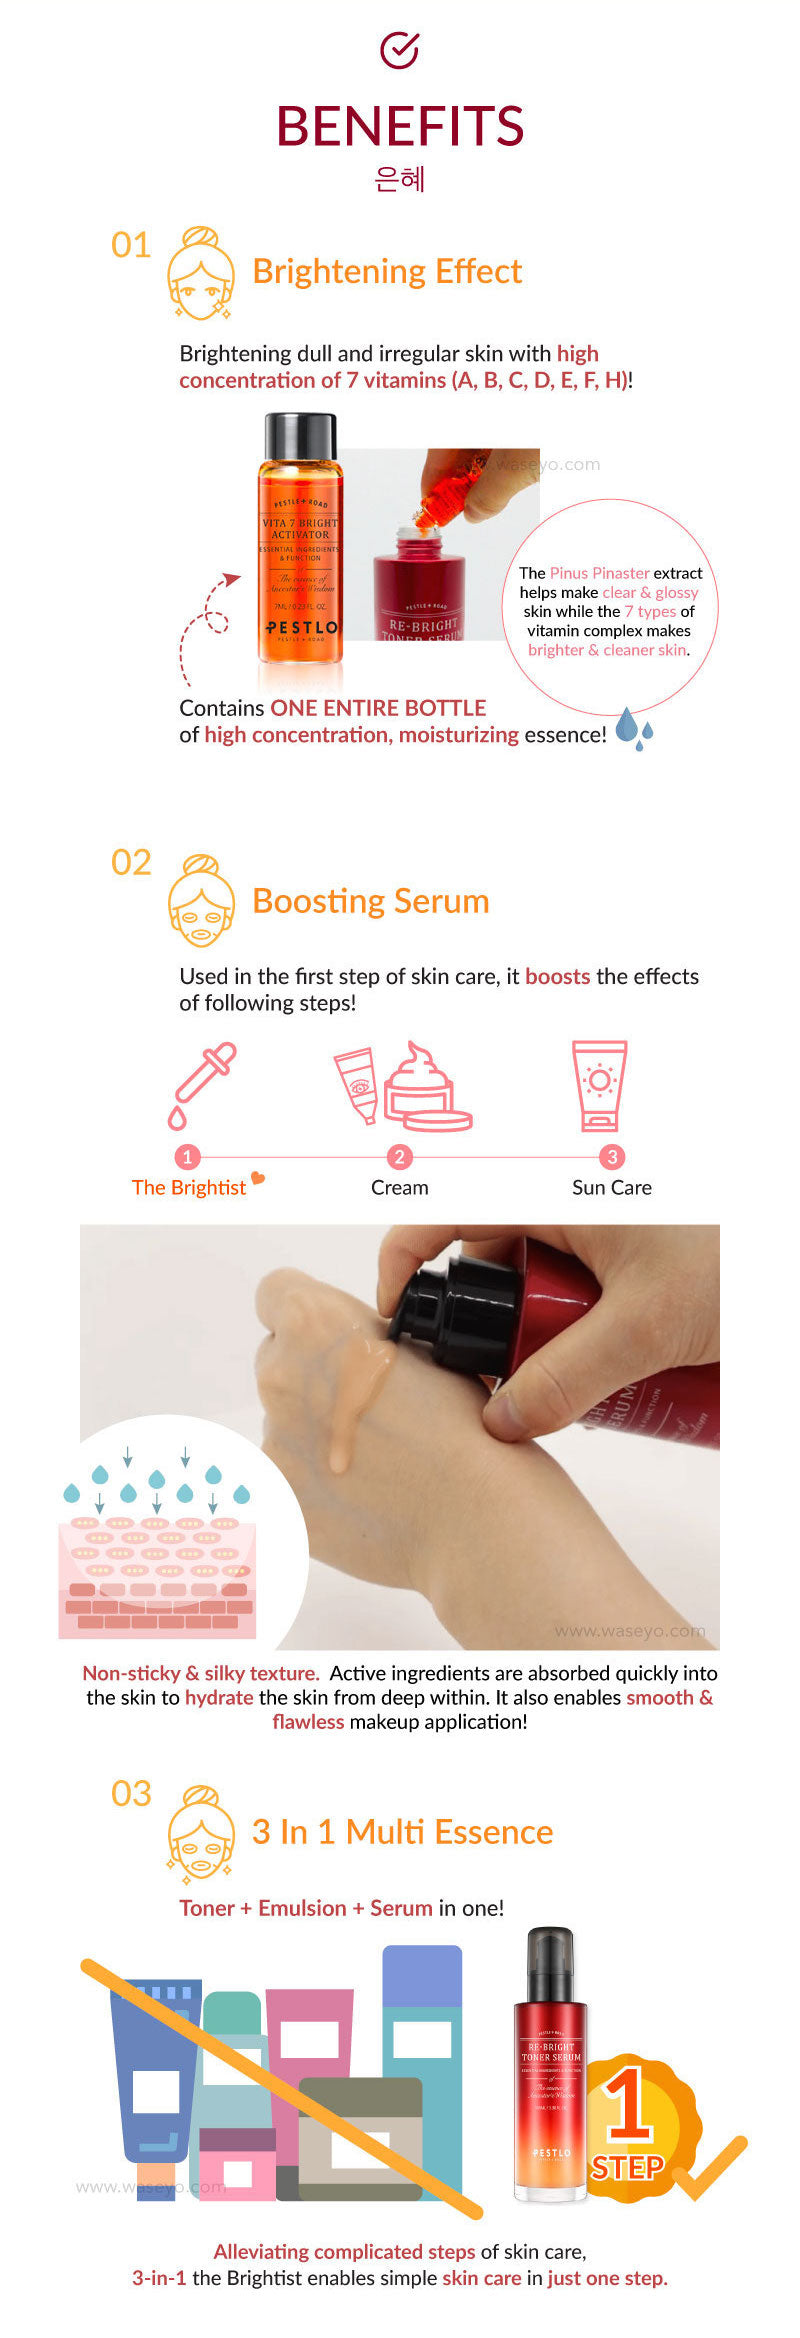 It is a great 3-in-1 Toner serum emulsion for lazy people and those in a hurry! Combining not 1 but 7 different types of vitamins for smoother brighter and more radiant skin!